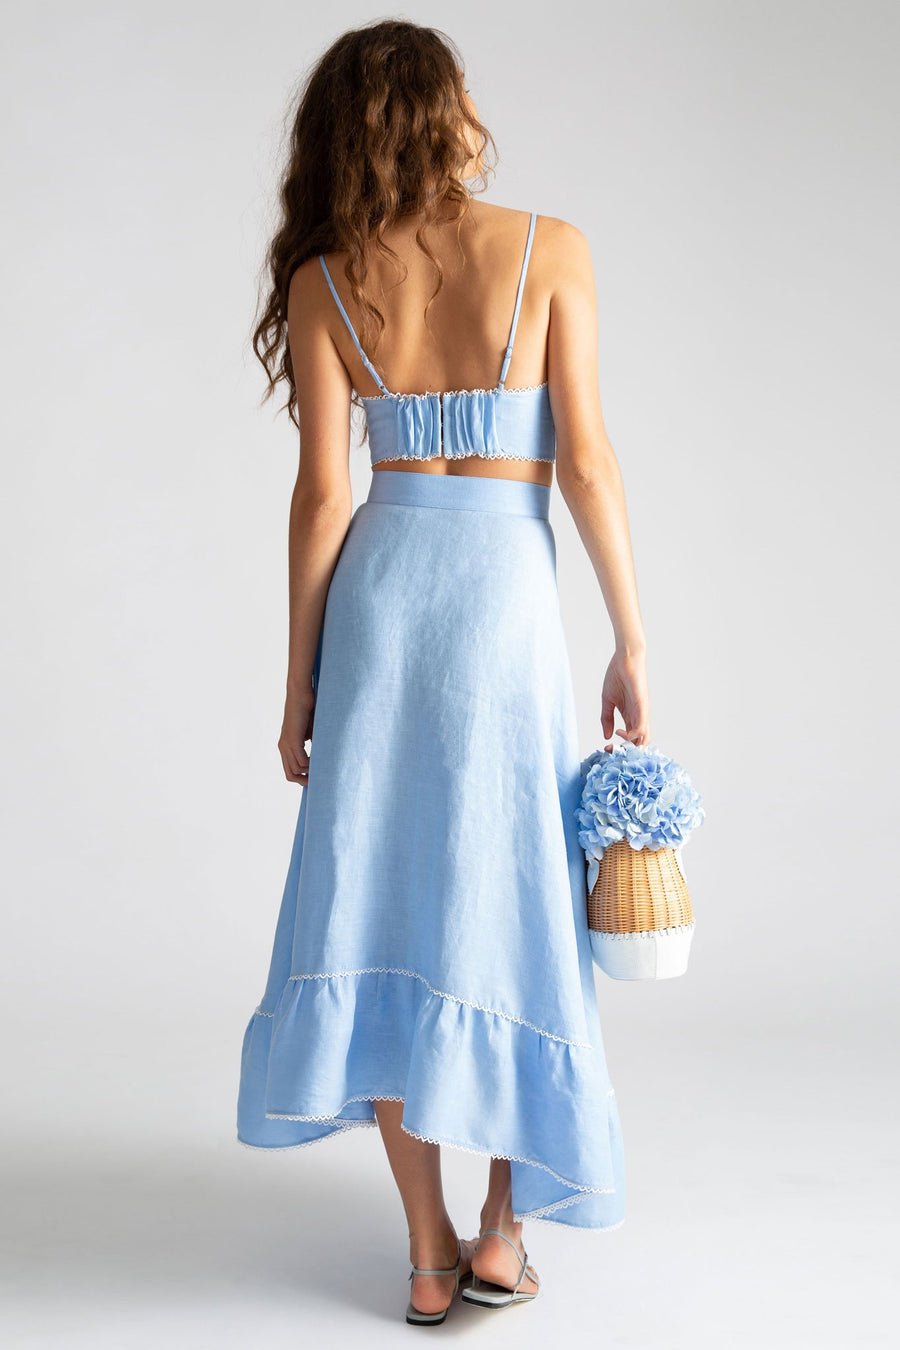 This is a photo of the backside of a woman wearing a light blue linen crop top and wrap skirt. She holds a straw bag with blue flowers in it.